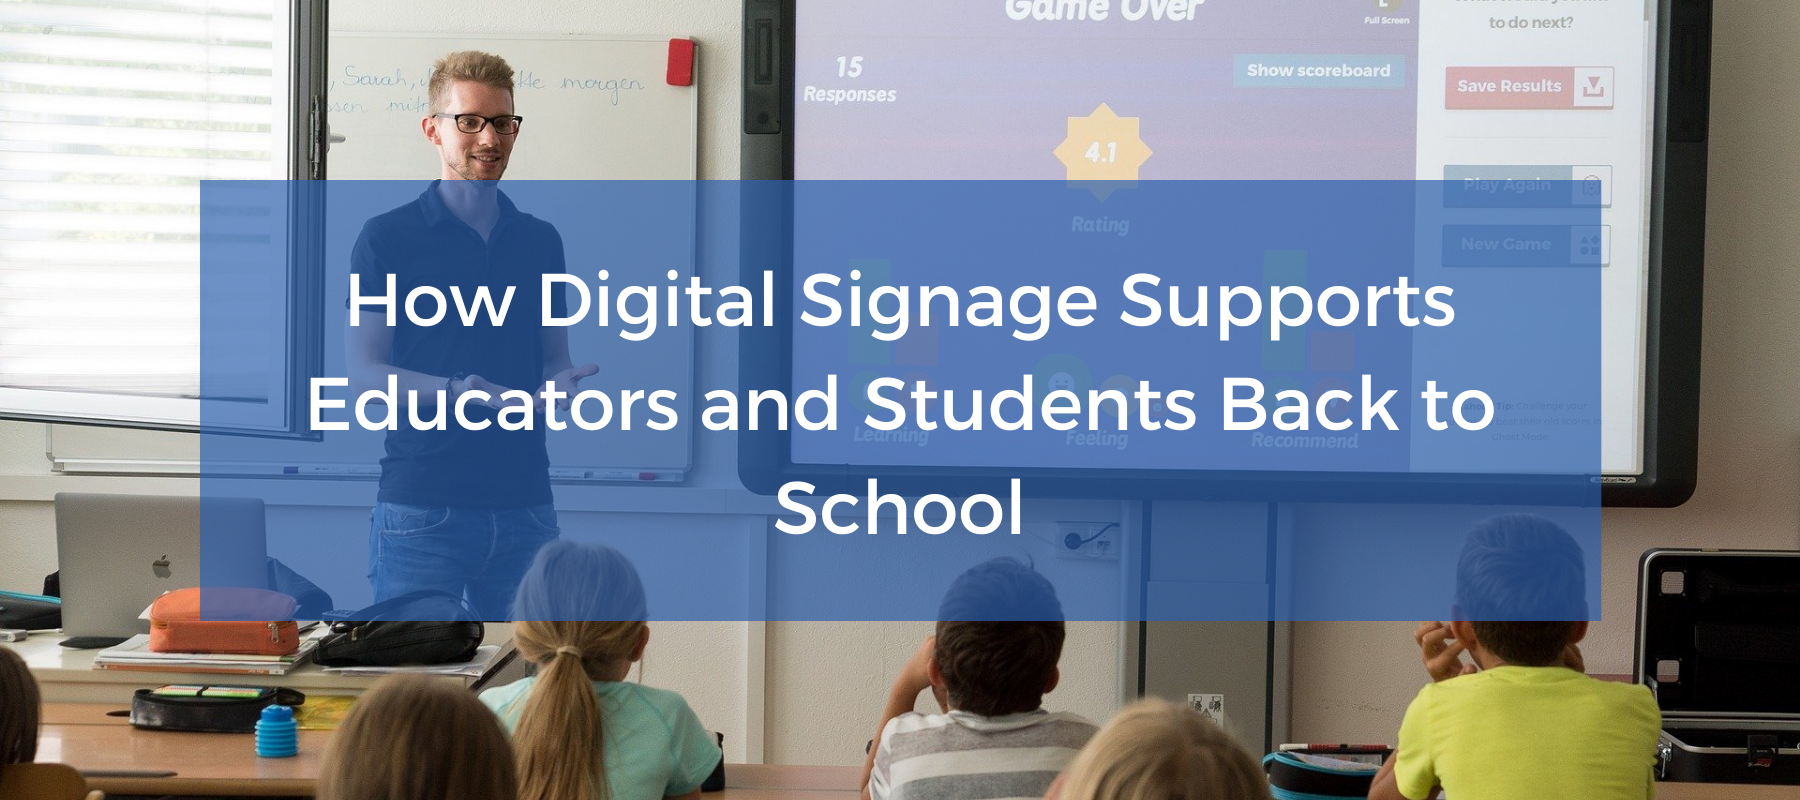 How Digital Signage Supports Educators and Students Back to School Featured Image